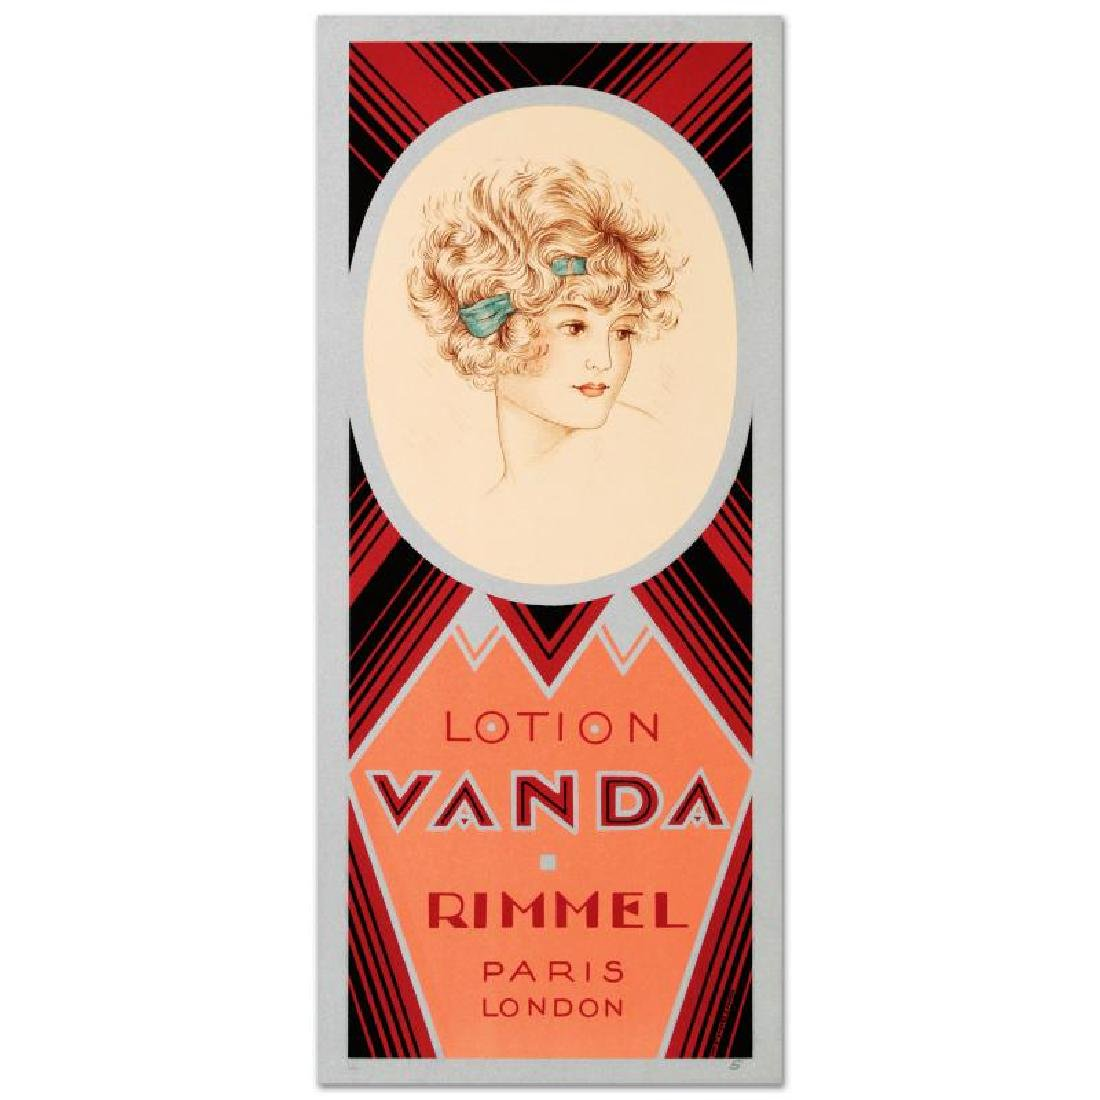 """Rimmel-Lotion Vanda"" Hand Pulled Lithograph by the RE - 3"